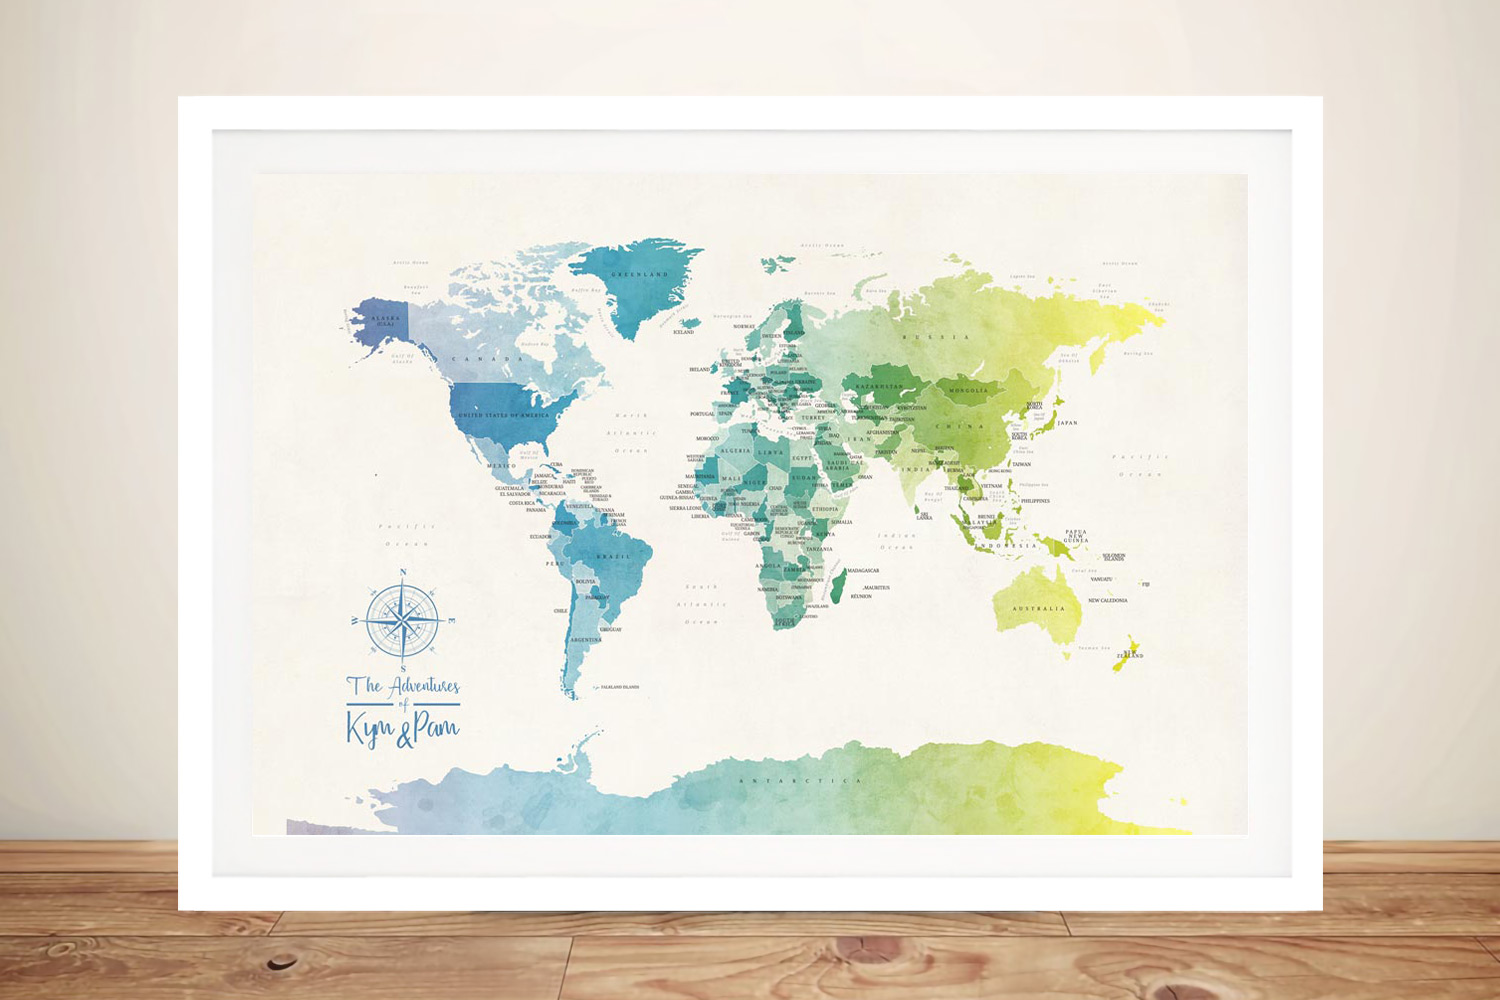 Buy Watercolour Political World Map Wall Art   Personalised World Map in Watercolours 1